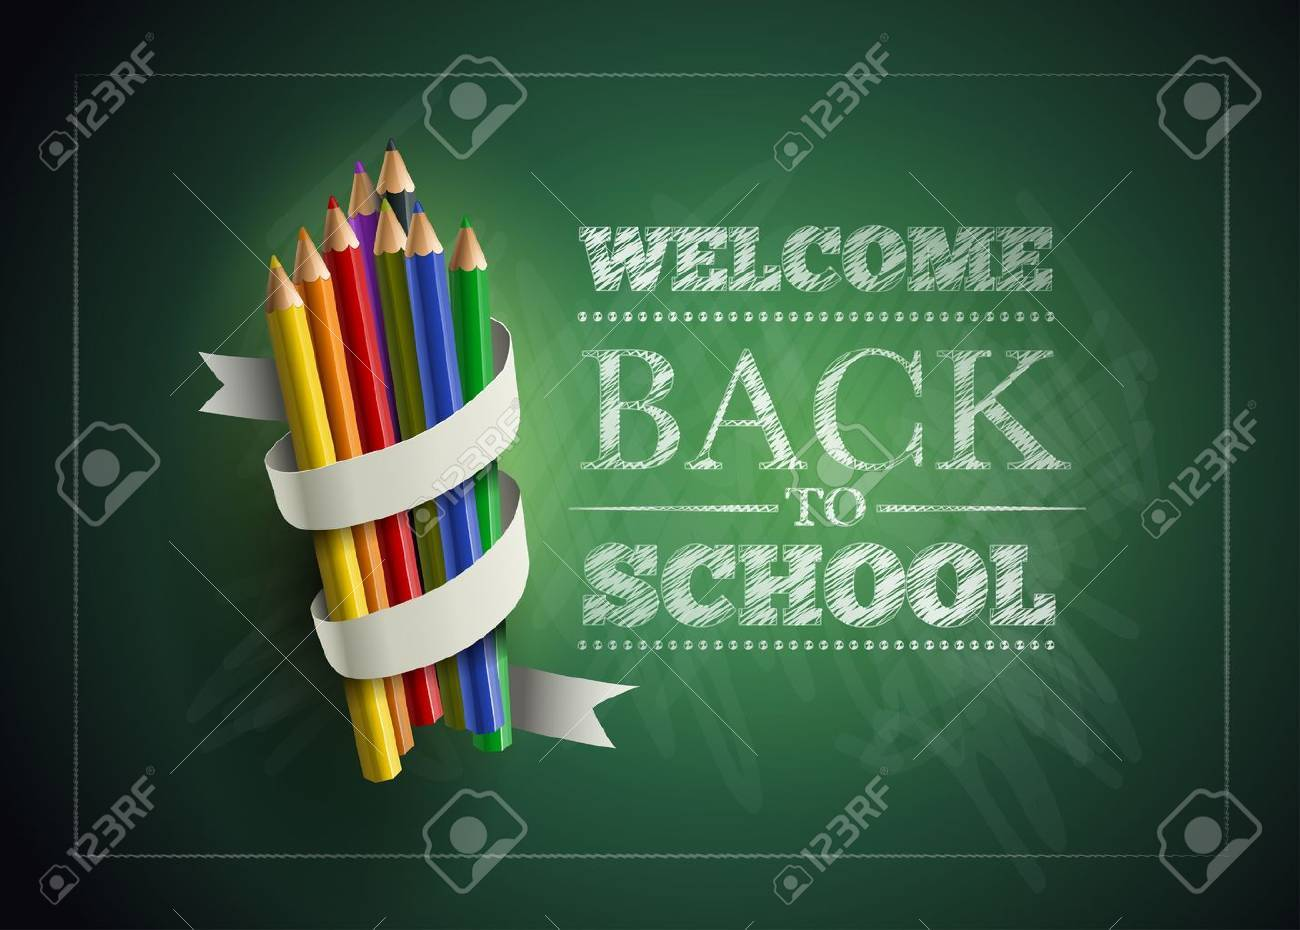 Welcome back to school. Vector illustration. Stock Vector - 21037372